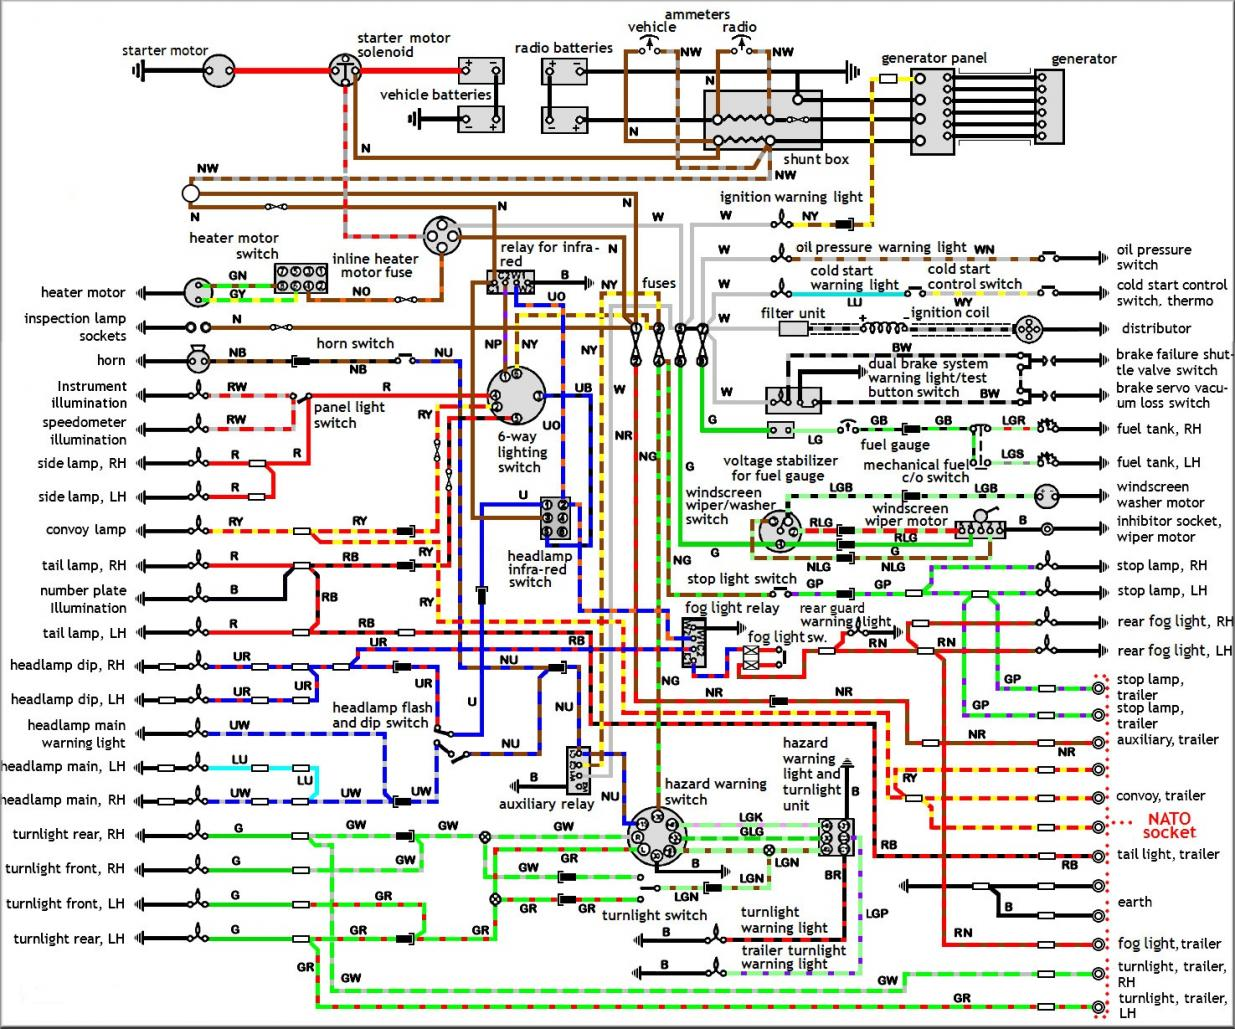 ex militaey 24 volt ffr elec probs landyzone land rover forum land rover series 3 wiring loom diagram at bayanpartner.co